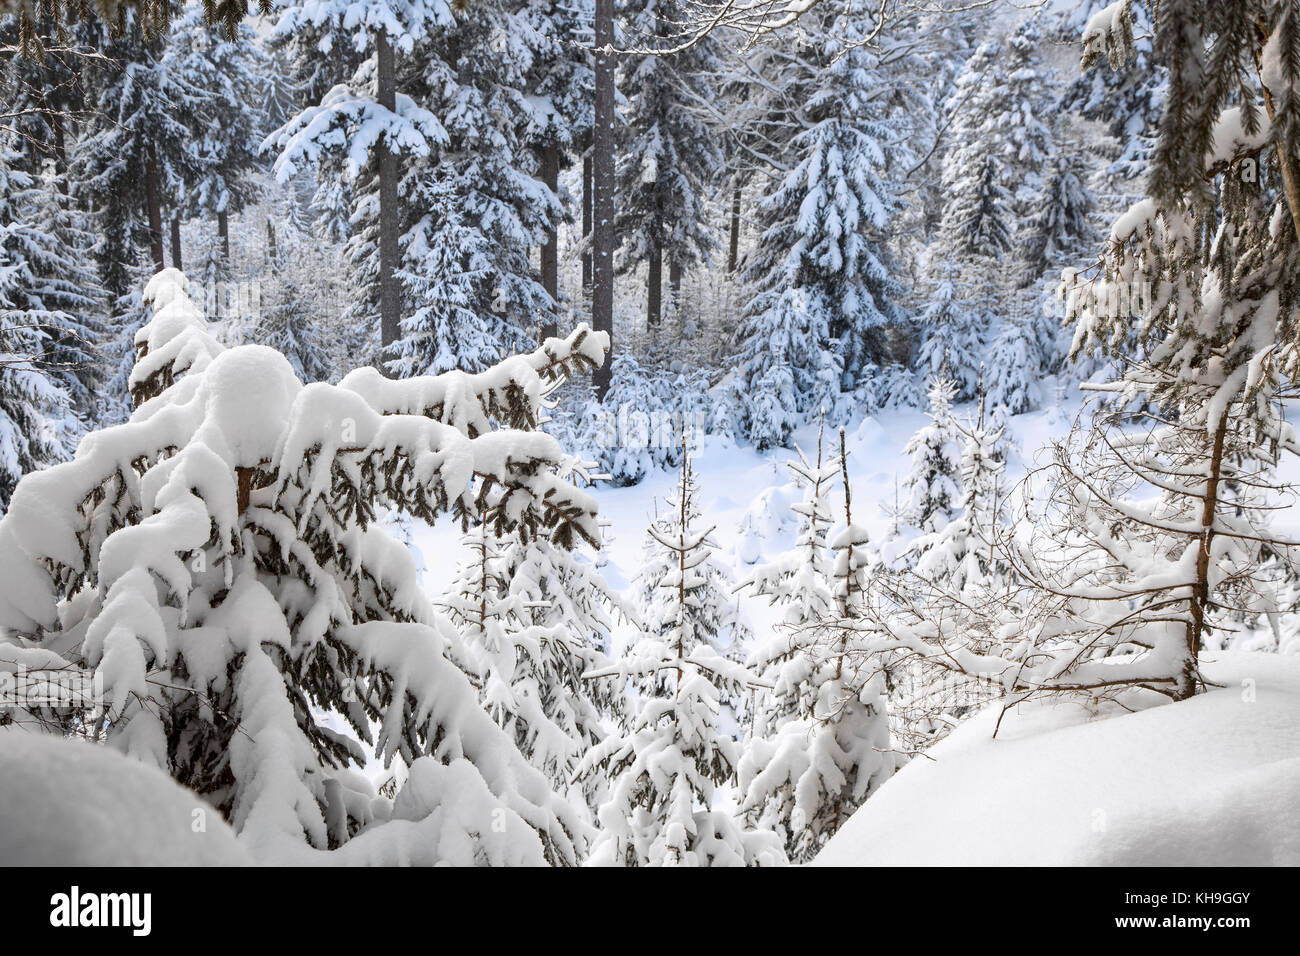 Branches of spruce trees laden with snow during snow shower in mixed forest in winter - Stock Image